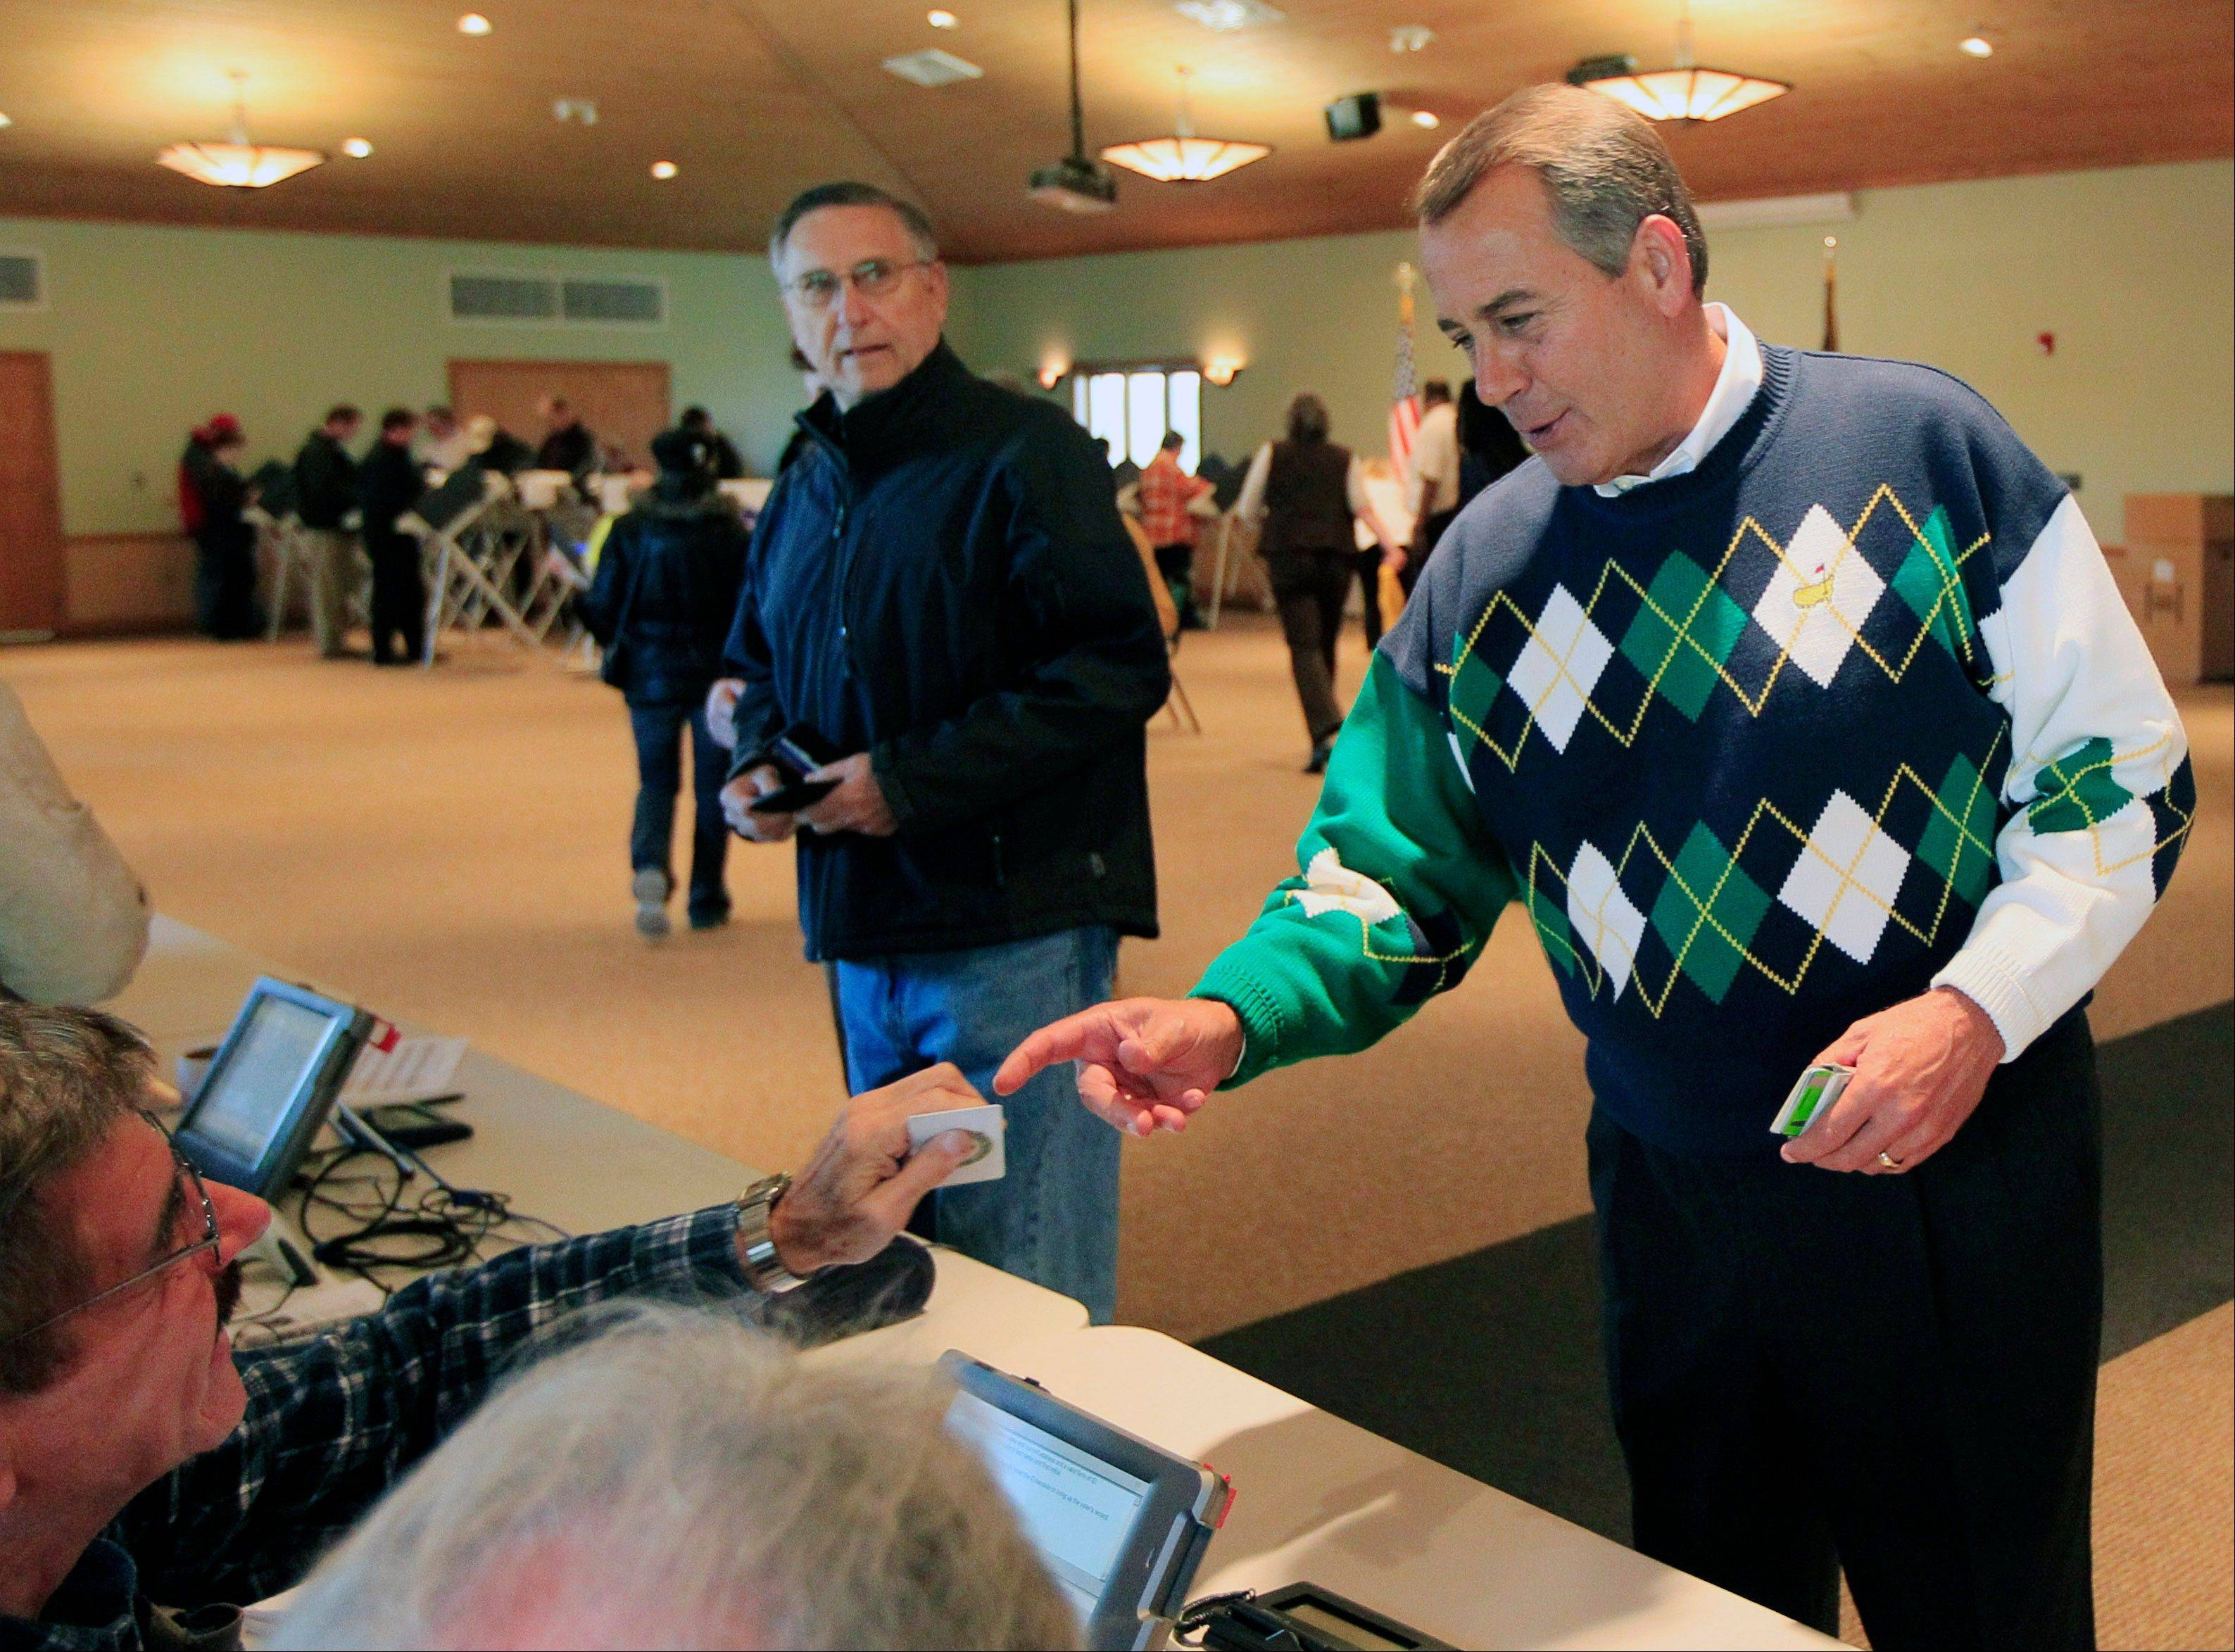 Speaker John Boehner, R-Ohio, presents a photo id as he gets his ballot to vote, Tuesday, Nov. 6, 2012, at Ronald Reagan Lodge in West Chester, Ohio. After a grinding presidential campaign, Americans head into polling places across the country.